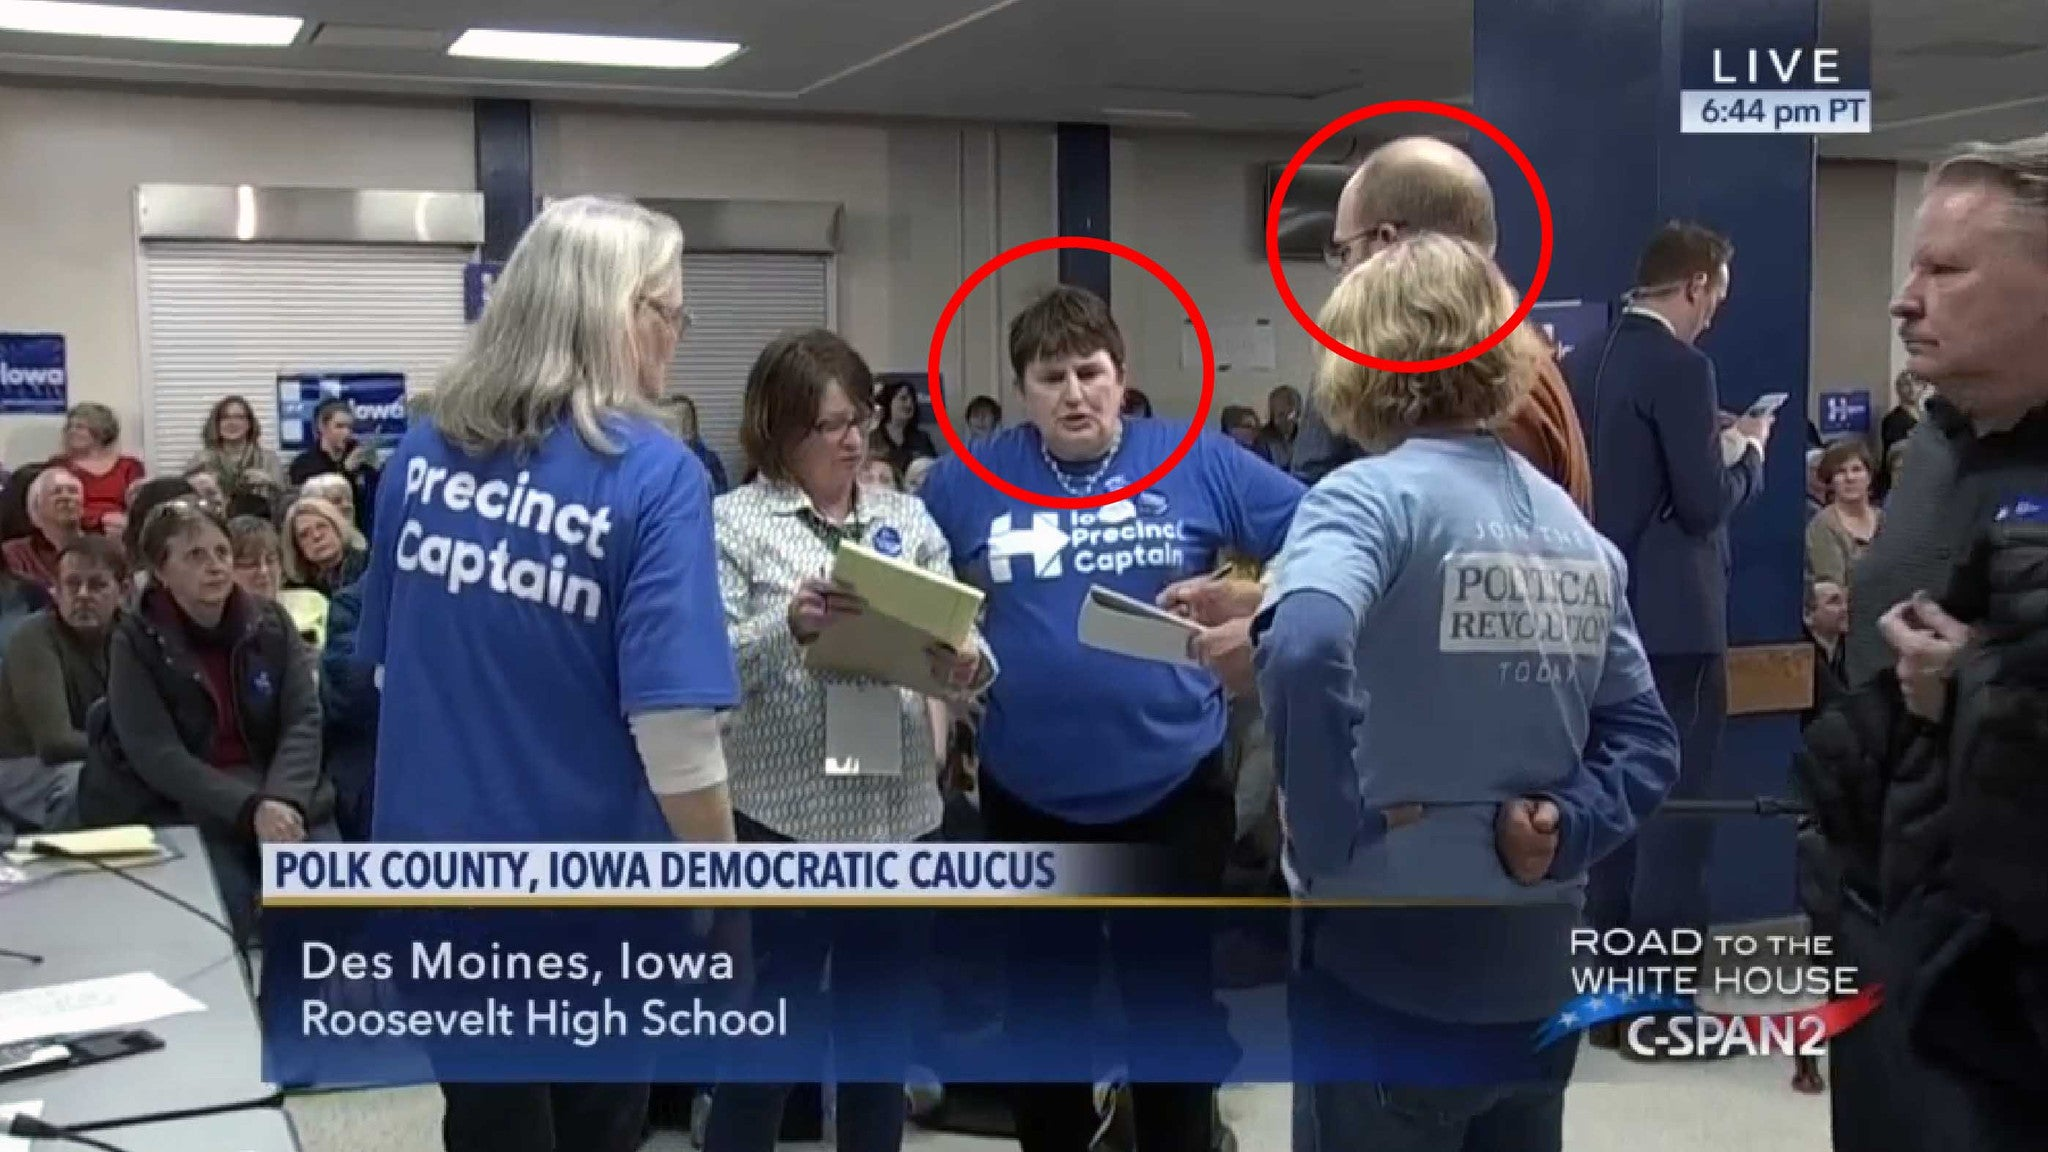 Clinton Caucus Caught on Camera Committing Voter Fraud in Iowa?